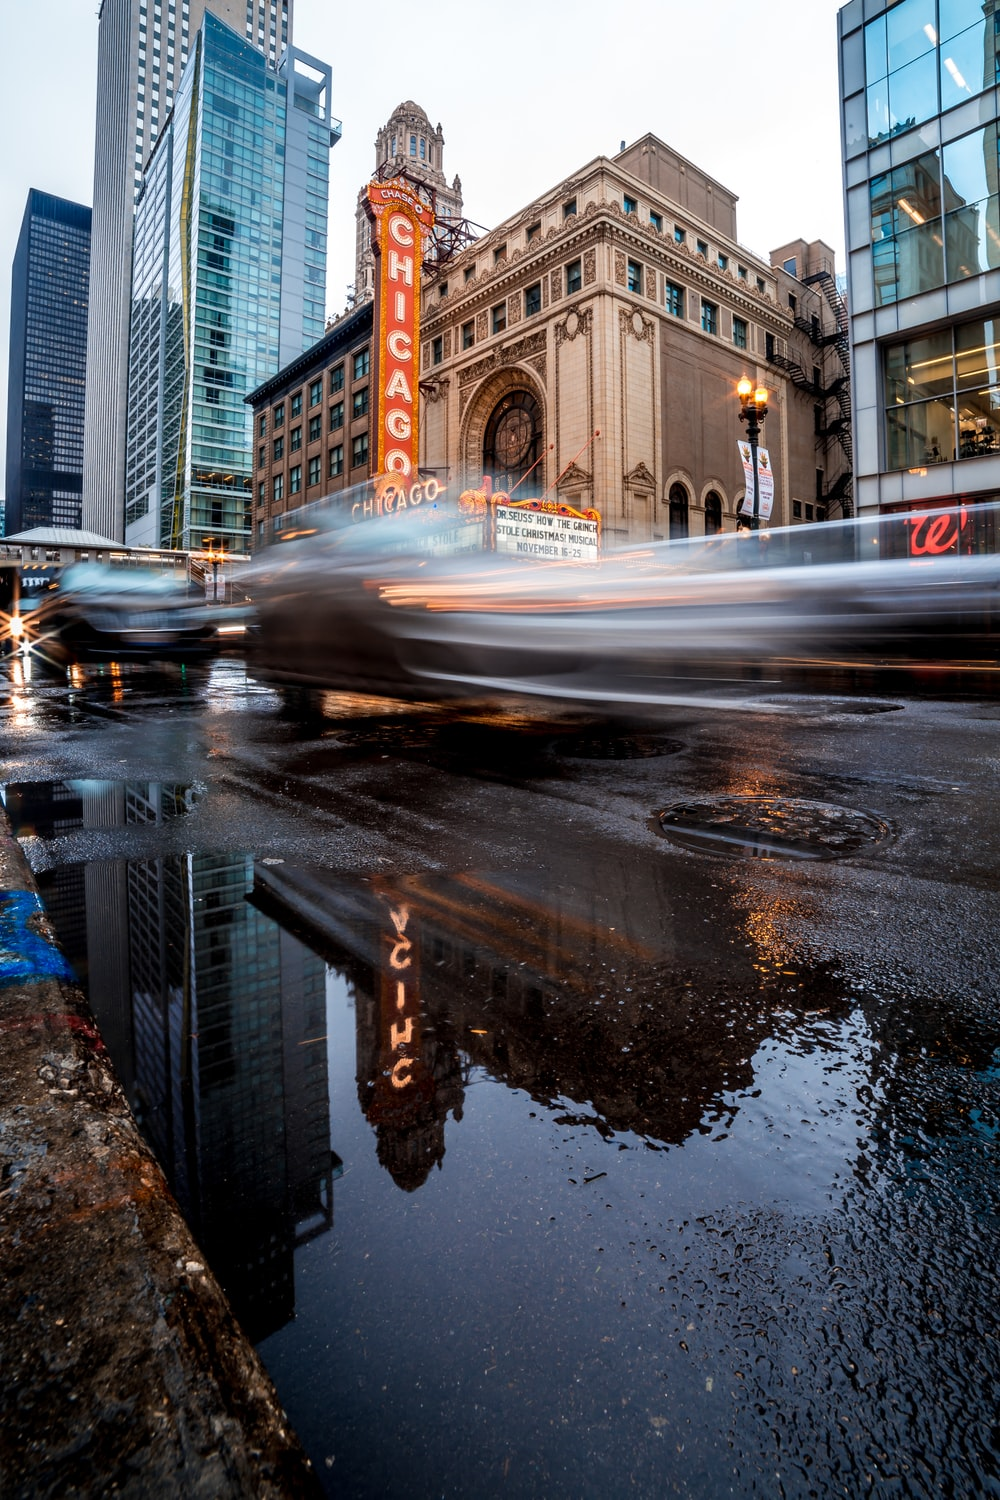 timelapse photography of vehicles on roadway near buildings